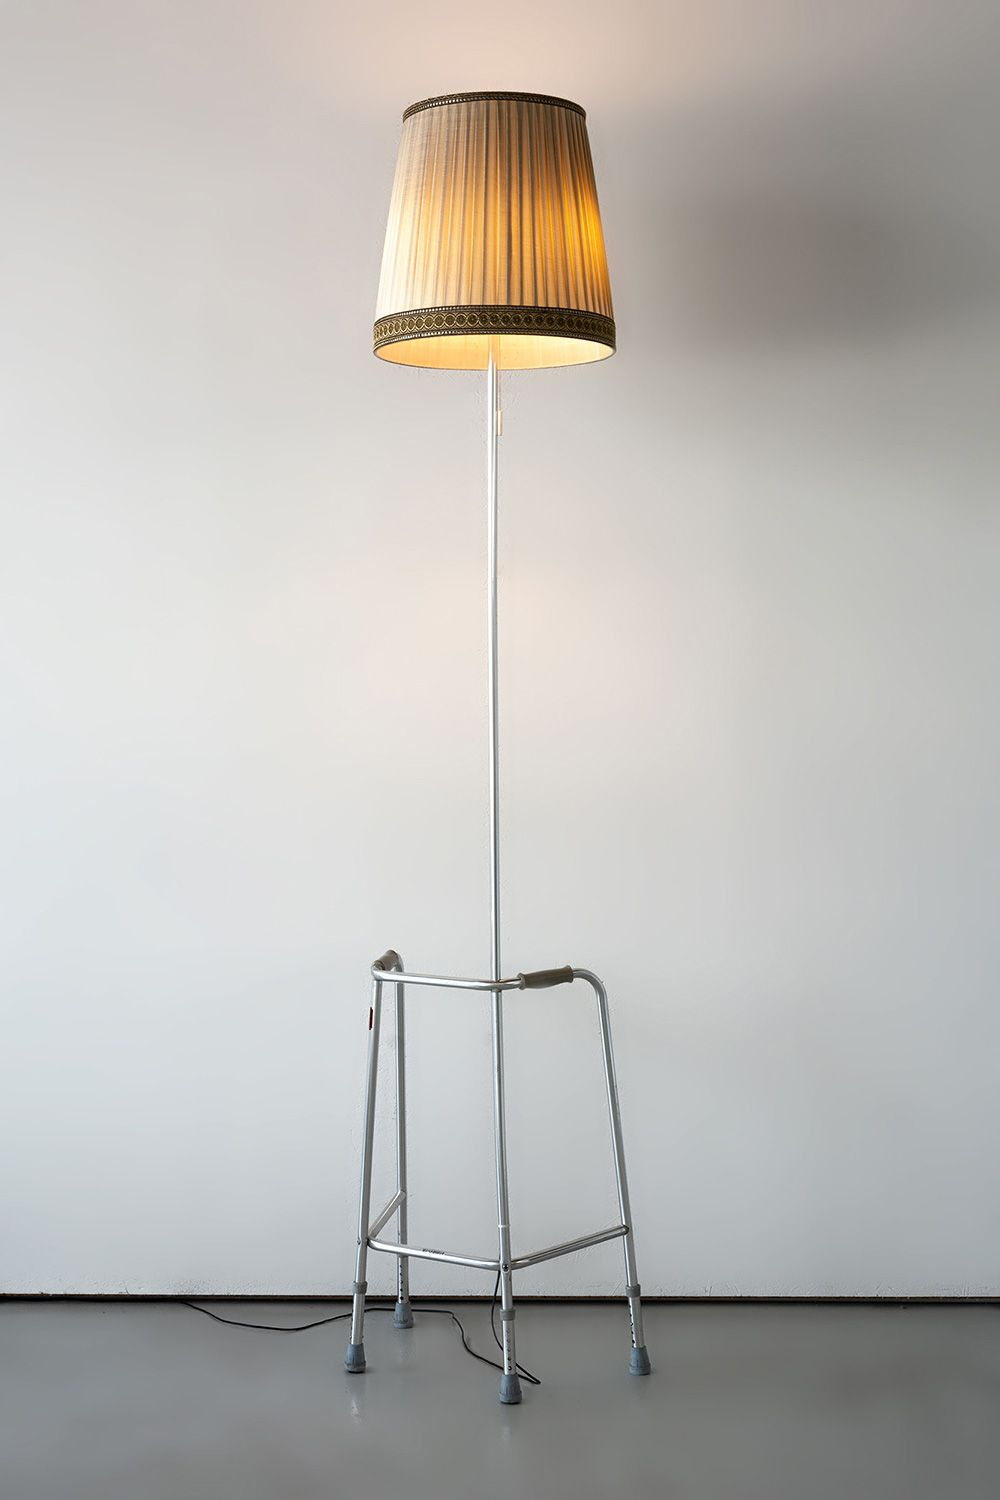 Always Stand On The Bright Side Of Life, 2019 Steel walker, pipe extension, lamp shade, light bulbs